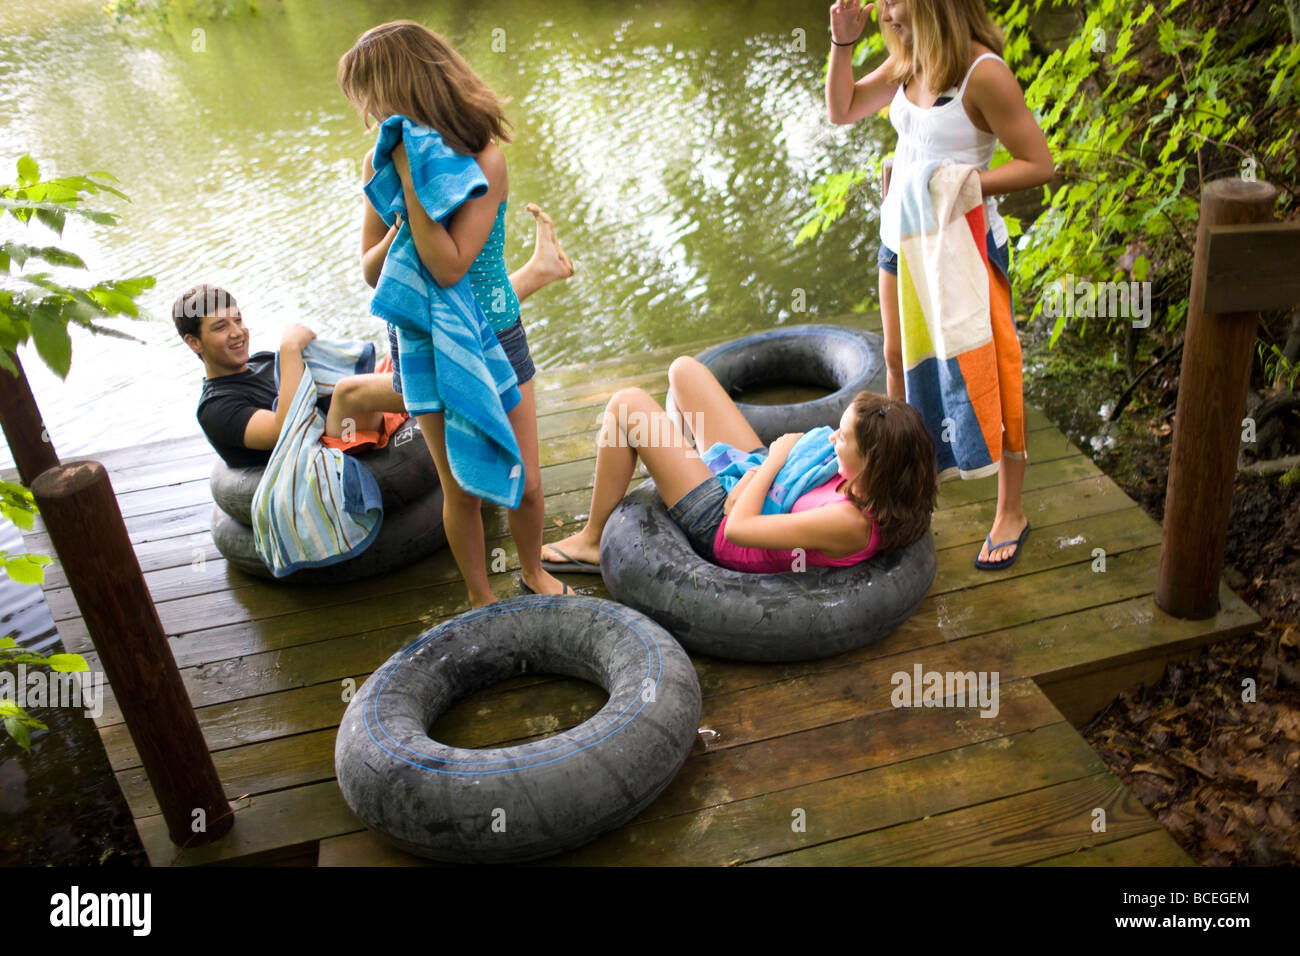 Group of teenagers hanging out near a lake with innertubes - Stock Image